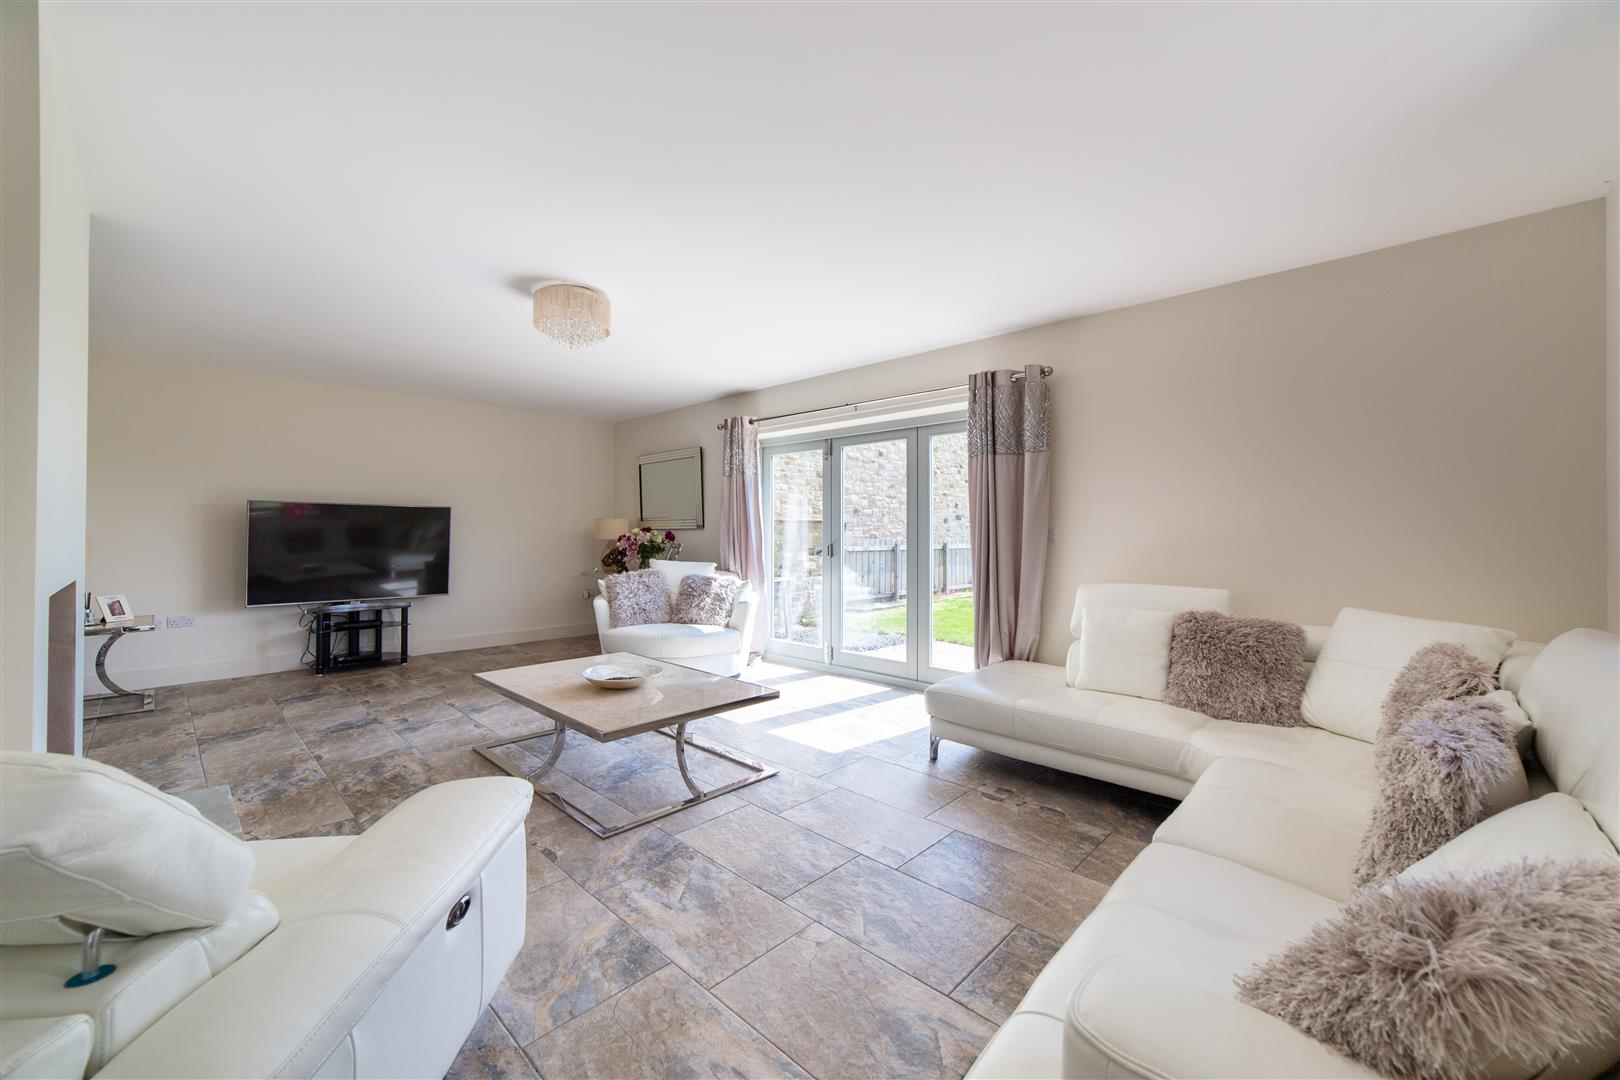 4 bed detached house for sale, Hexham 3